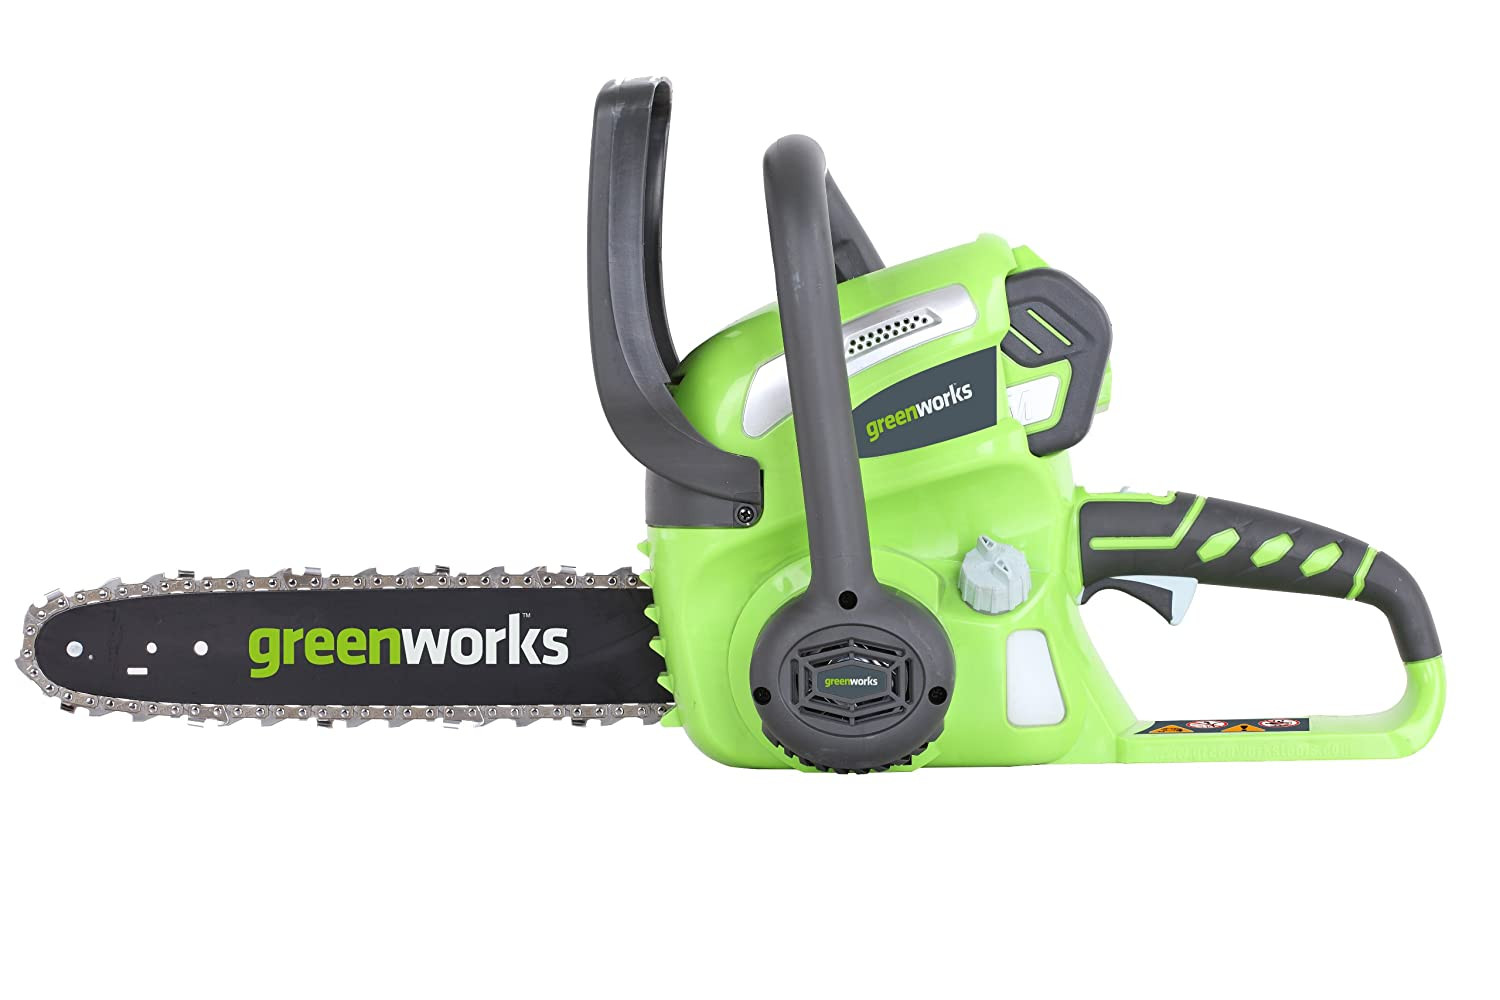 GreenWorks 20262 battery-powered chainsaw